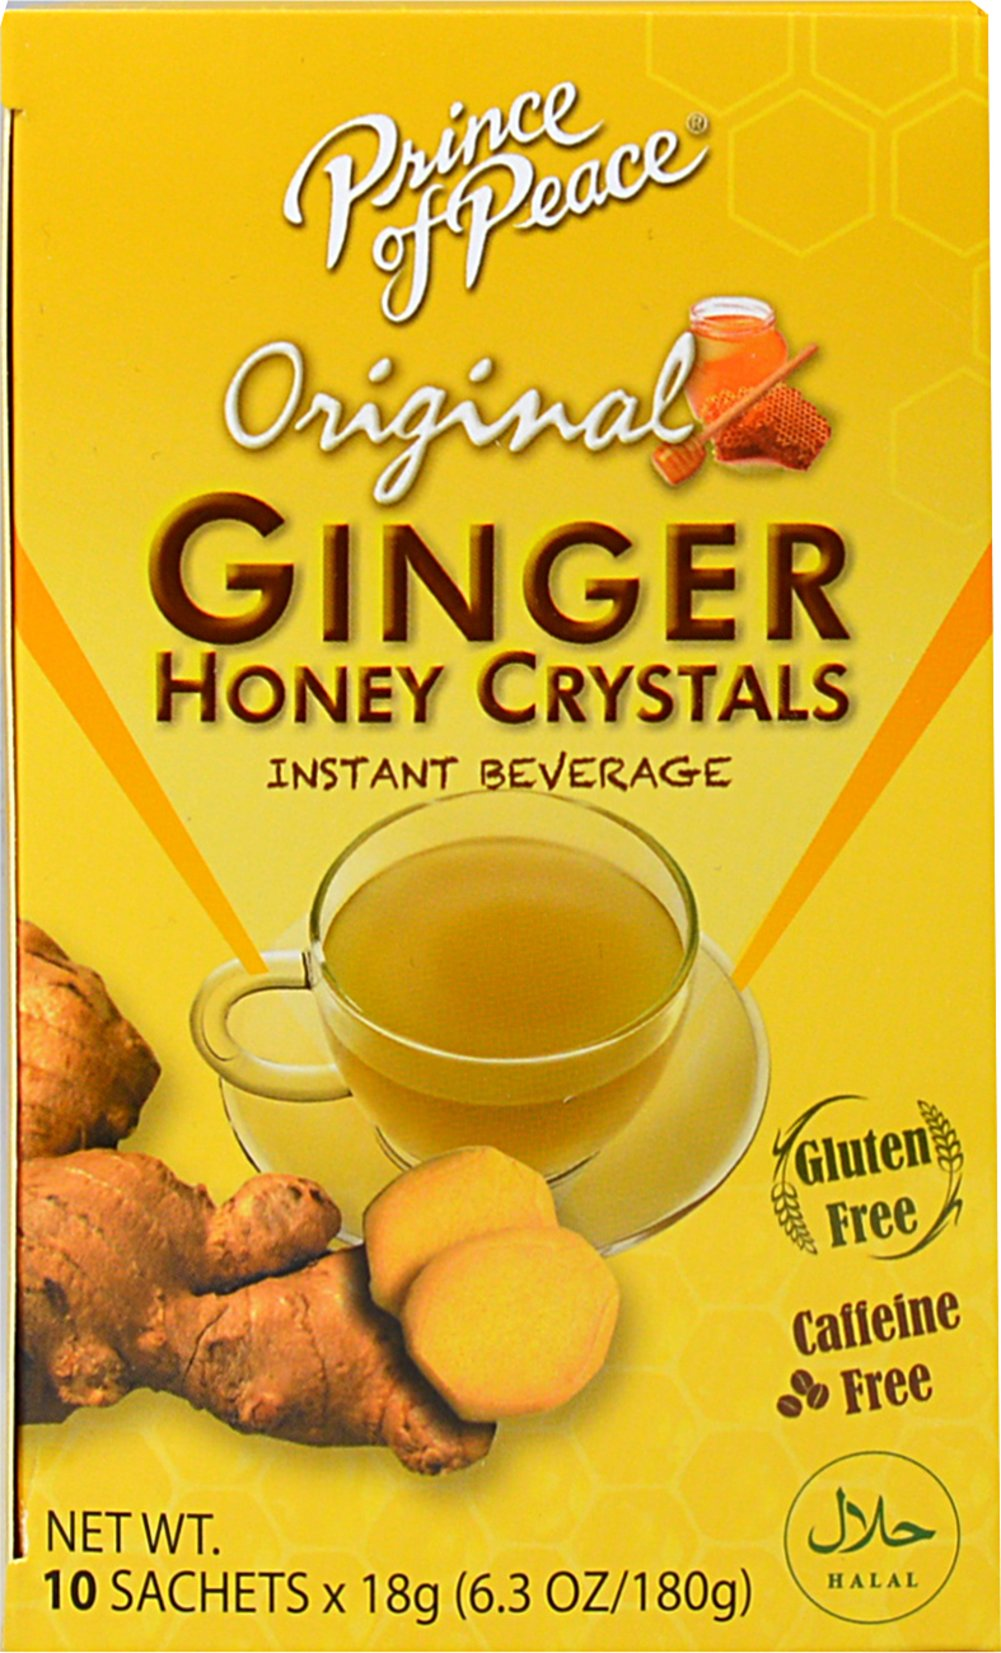 Ginger Honey Crystals <p><strong>From the Manufacturer's Label: </strong></p><p>Prince of Peace brings you all the natural benefits of Ginger and Honey in their special blend of Instant Ginger Honey Crystals. Instant soluble, convenient, and has no artificial additives. You'll love this sweet and spicy flavor!<br /></p> 10 Crystals  $7.99